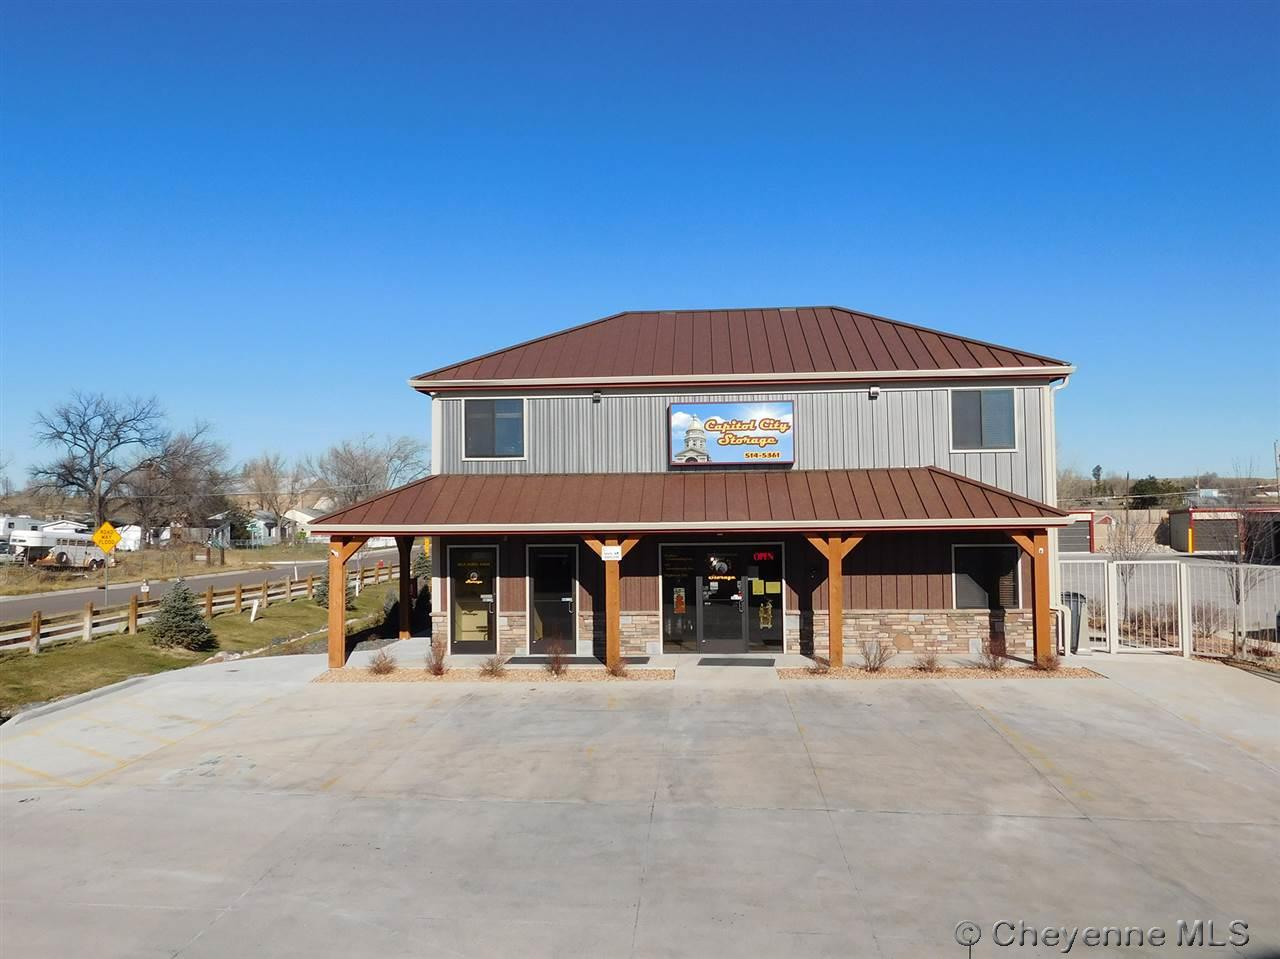 Commercial for Sale at 3325 Polk Ave 3325 Polk Ave Cheyenne, Wyoming 82001 United States